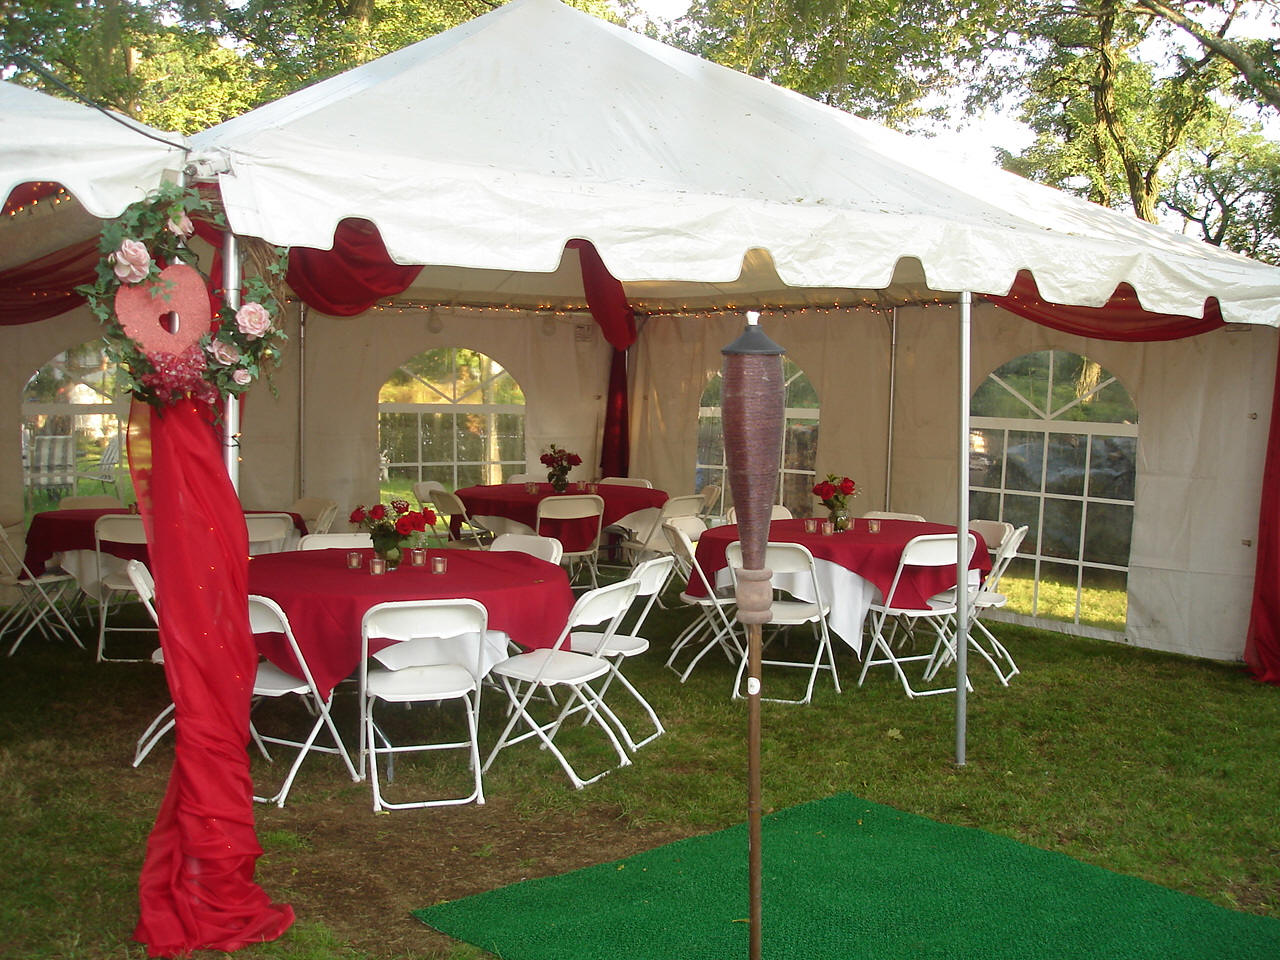 Party TENT Rentals - Affordable Rentals SWFL, Party Rentals, Fort Myers